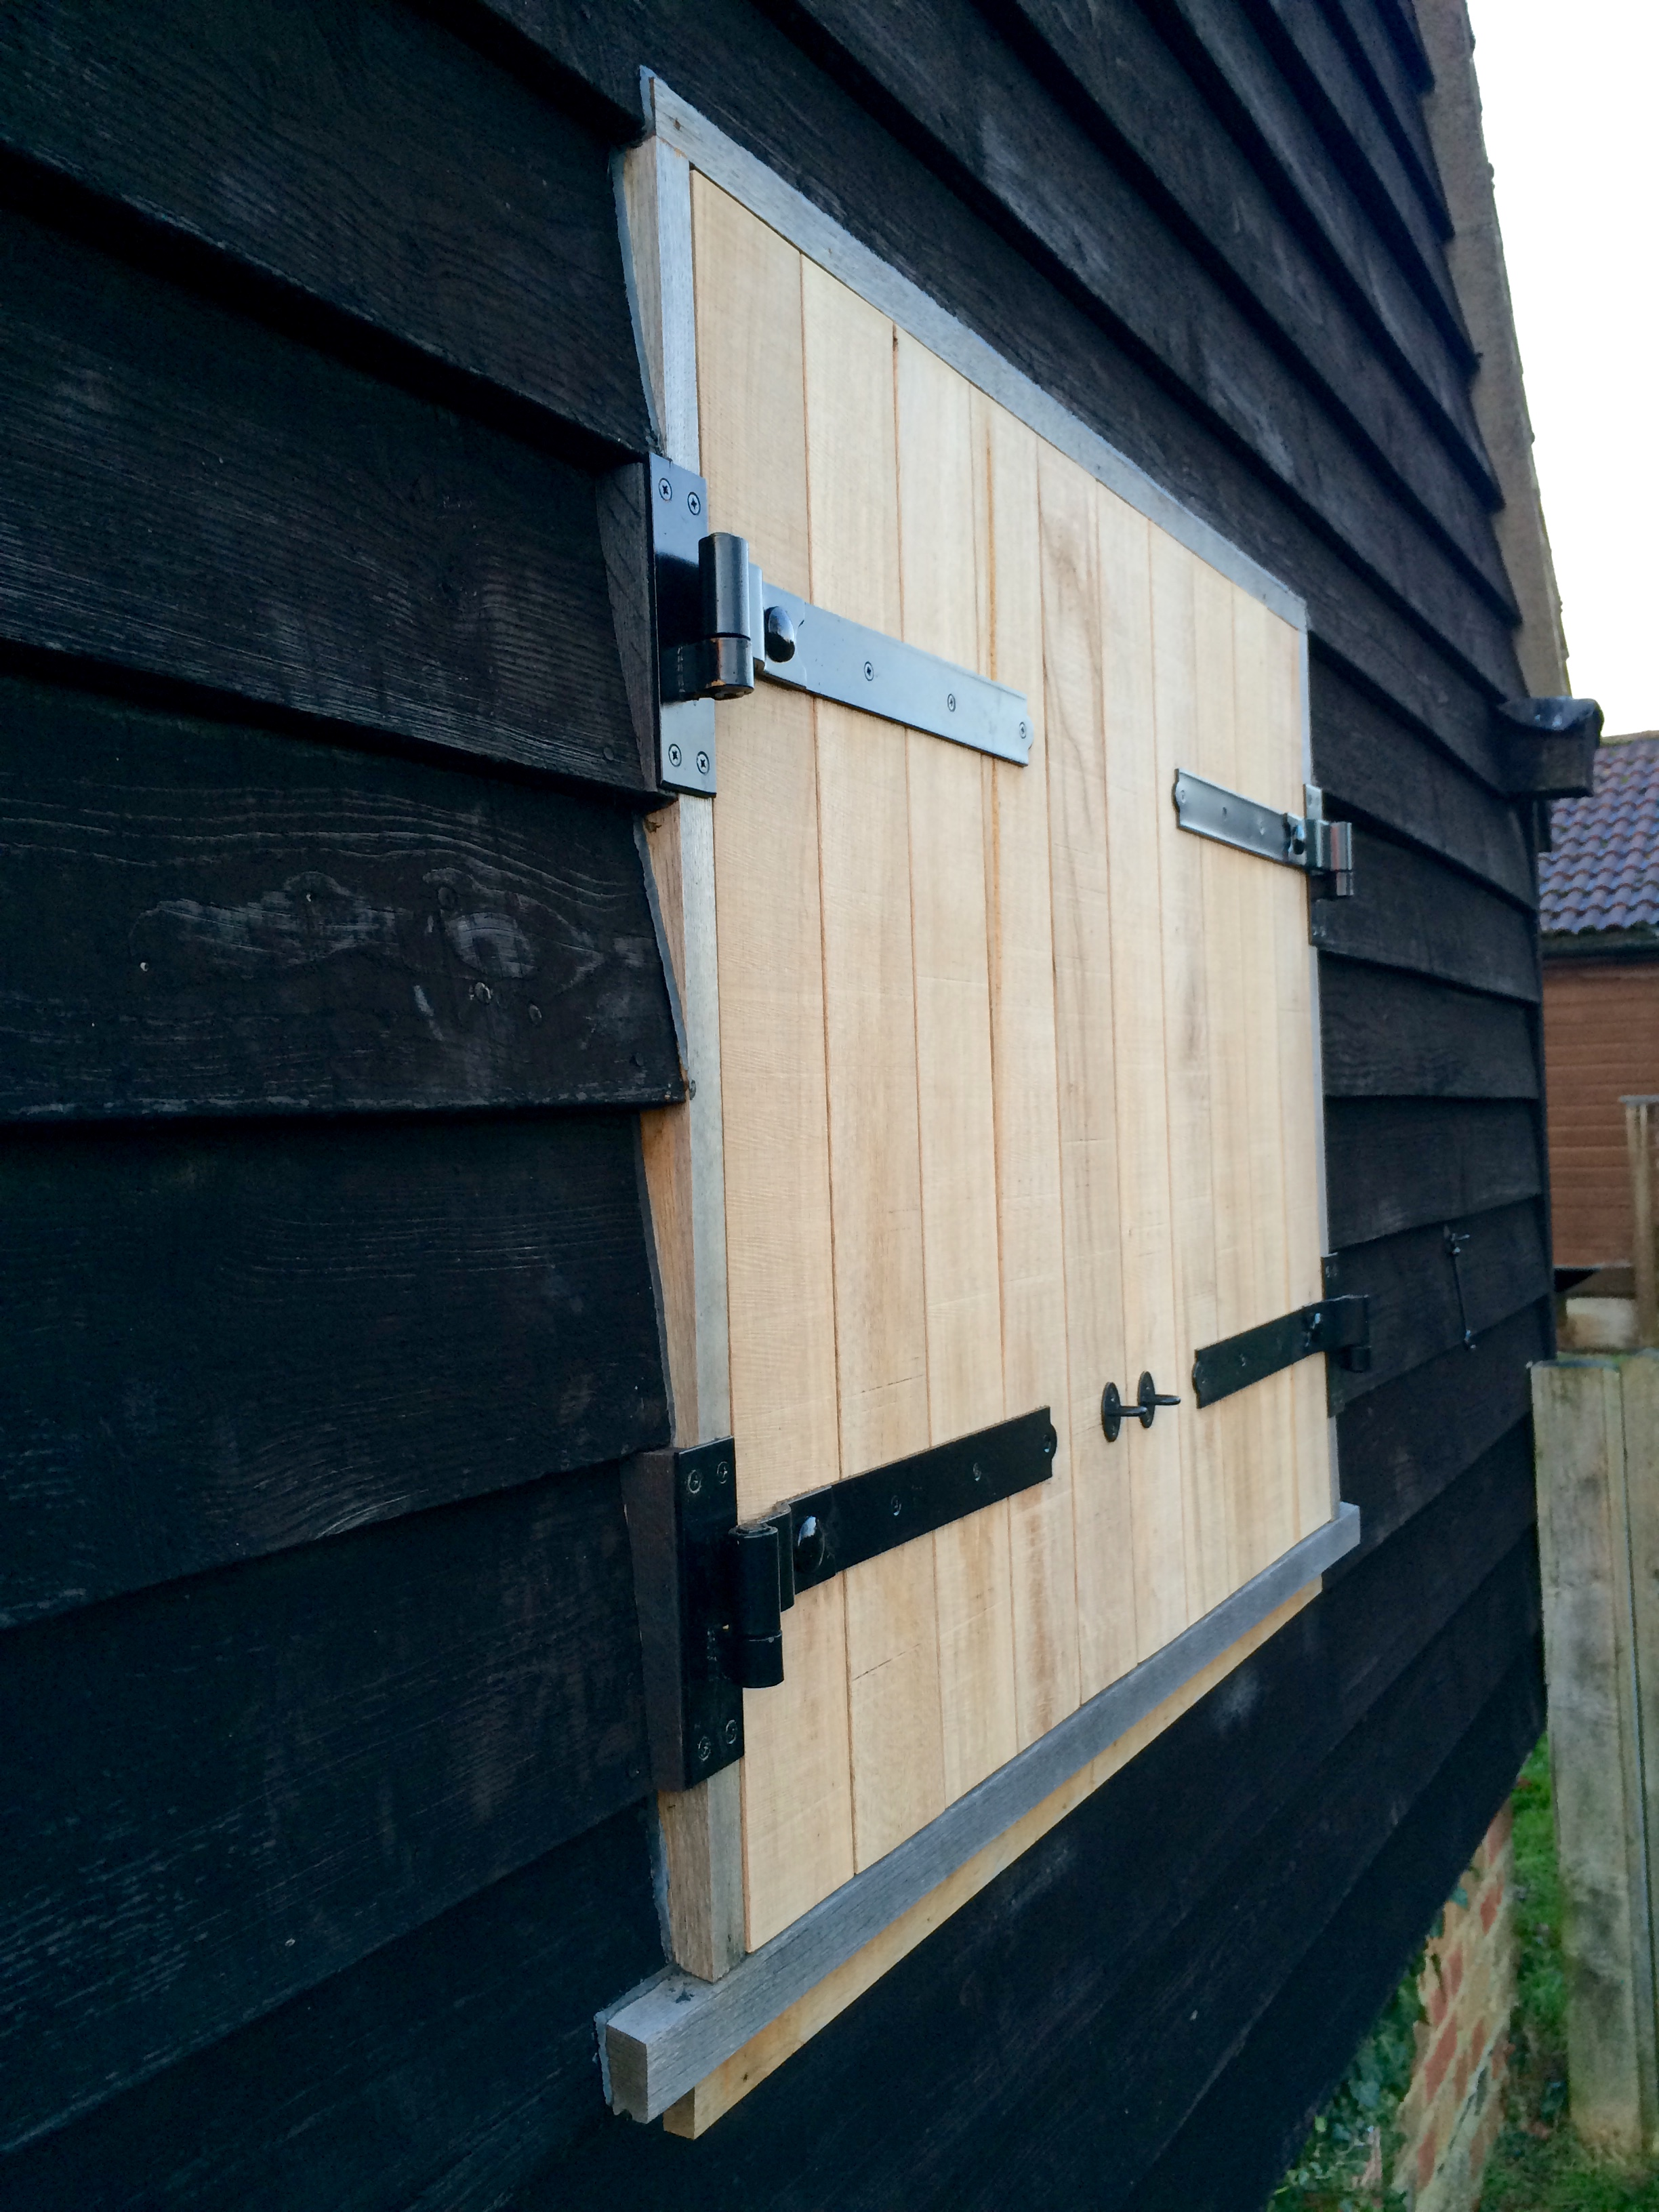 - Solid oak window shutters help to offer both security and weather protection to this lovely old barn. The oak will silver naturally with age.